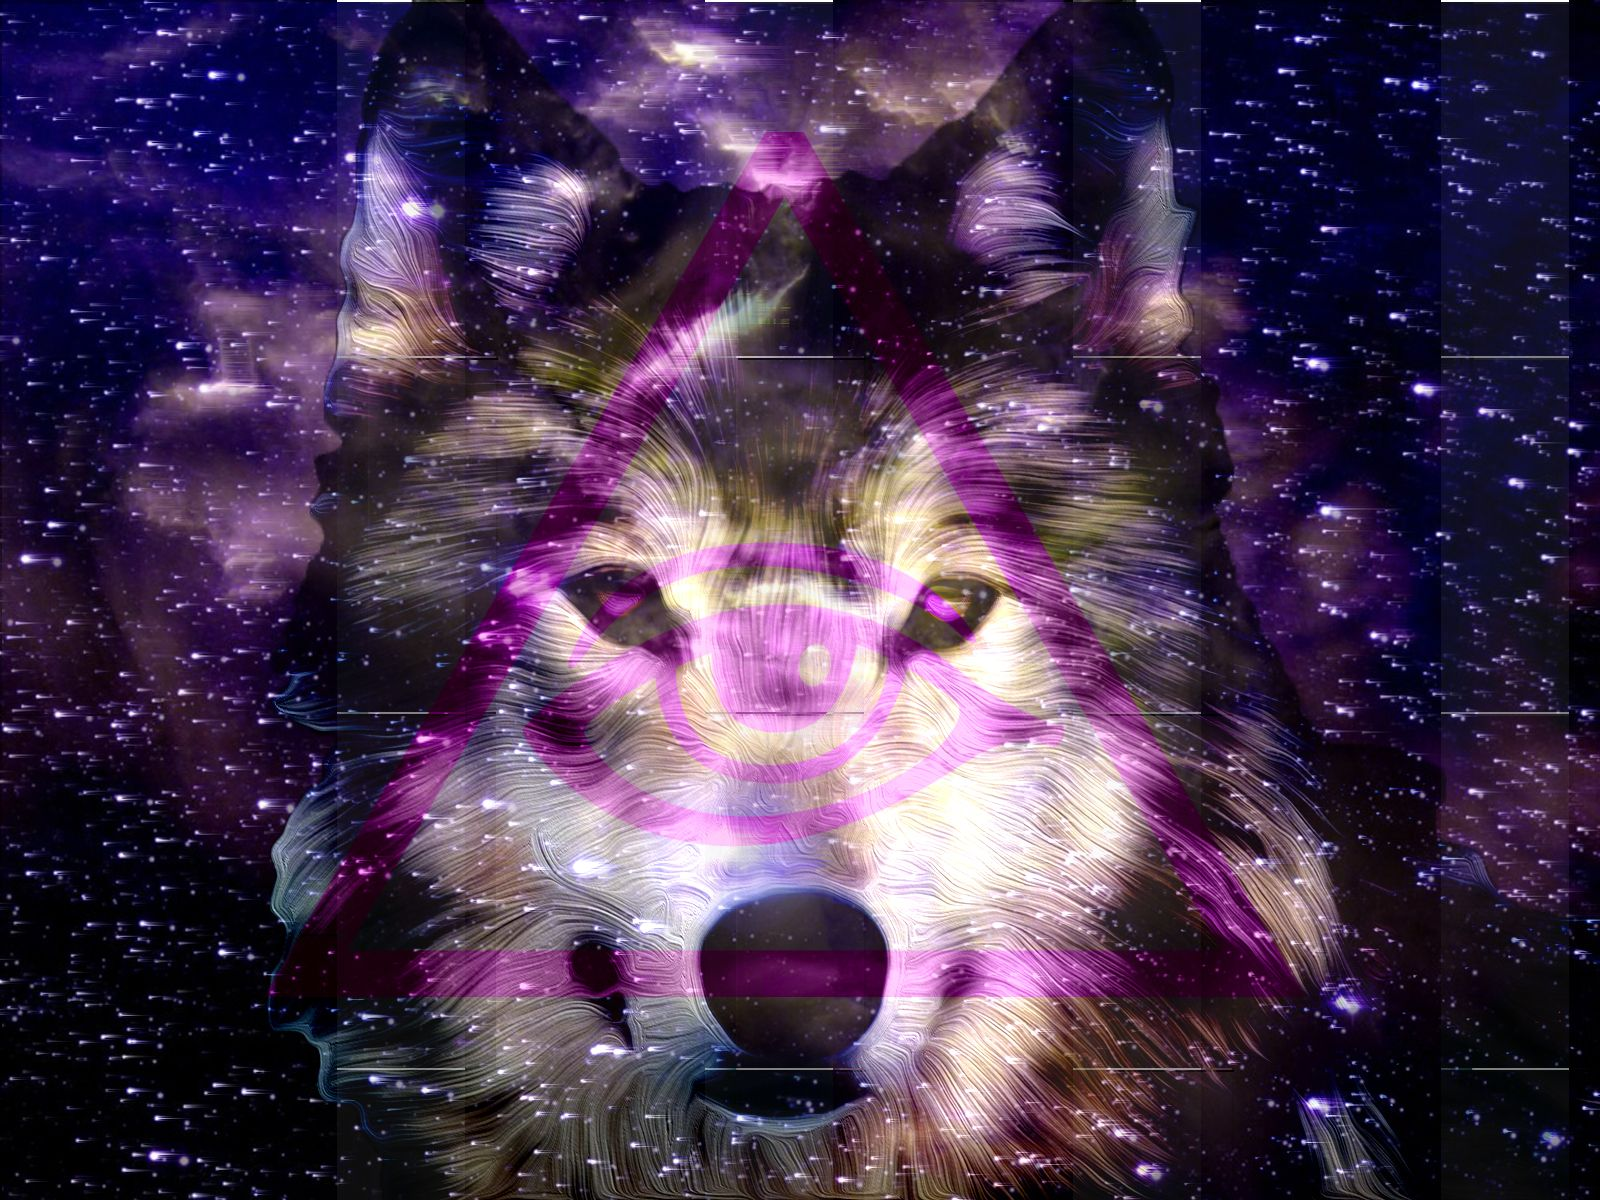 Iphone wallpaper tumblr wolf - Tumblr Backgrounds Hipster Google Keres S